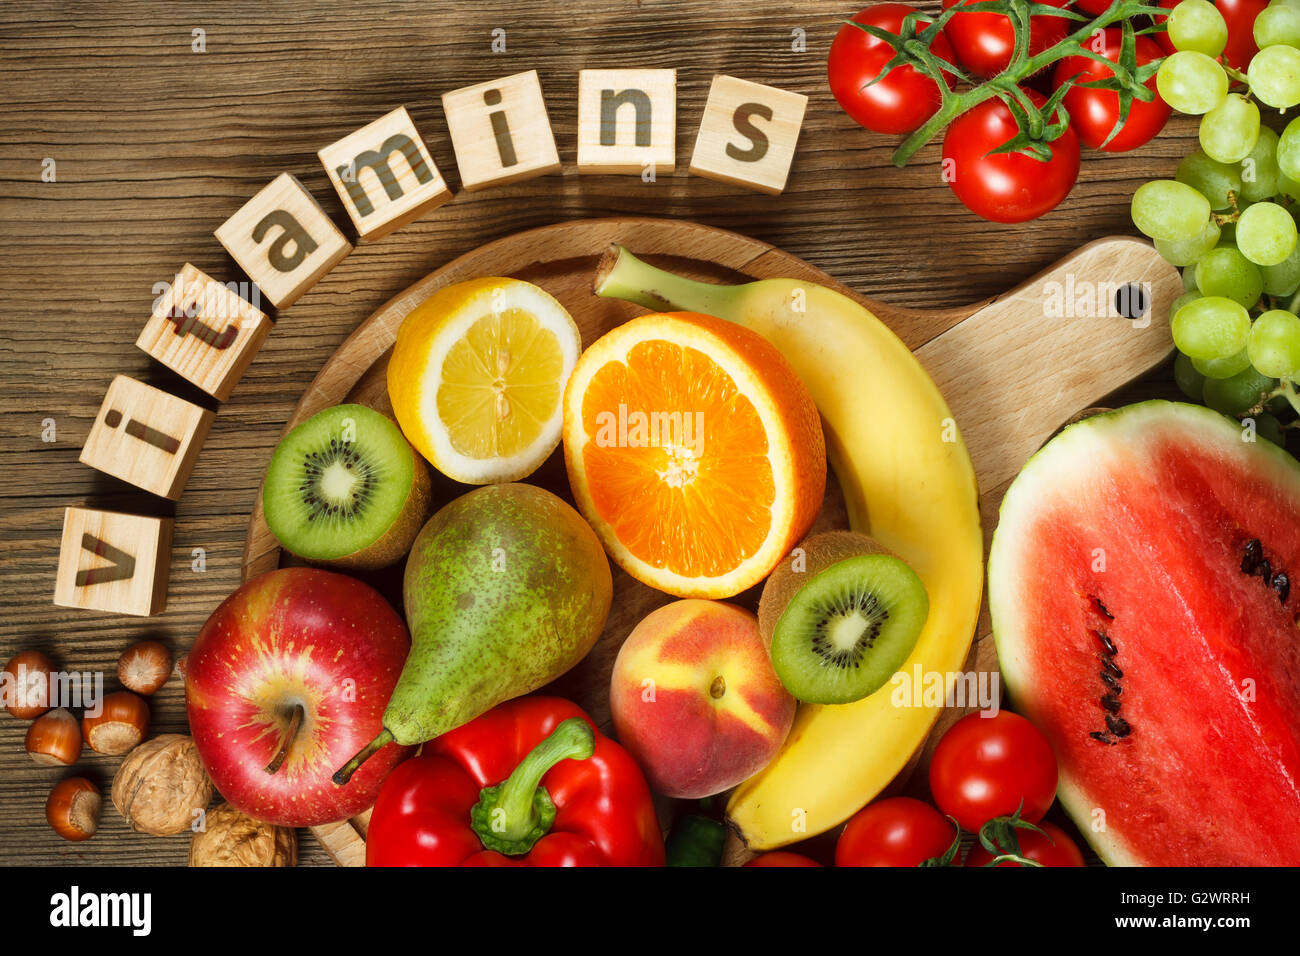 Vitamins in fruits and vegetables. Natural products rich in vitamins as oranges, lemons, red pepper, kiwi, tomatoes, - Stock Image